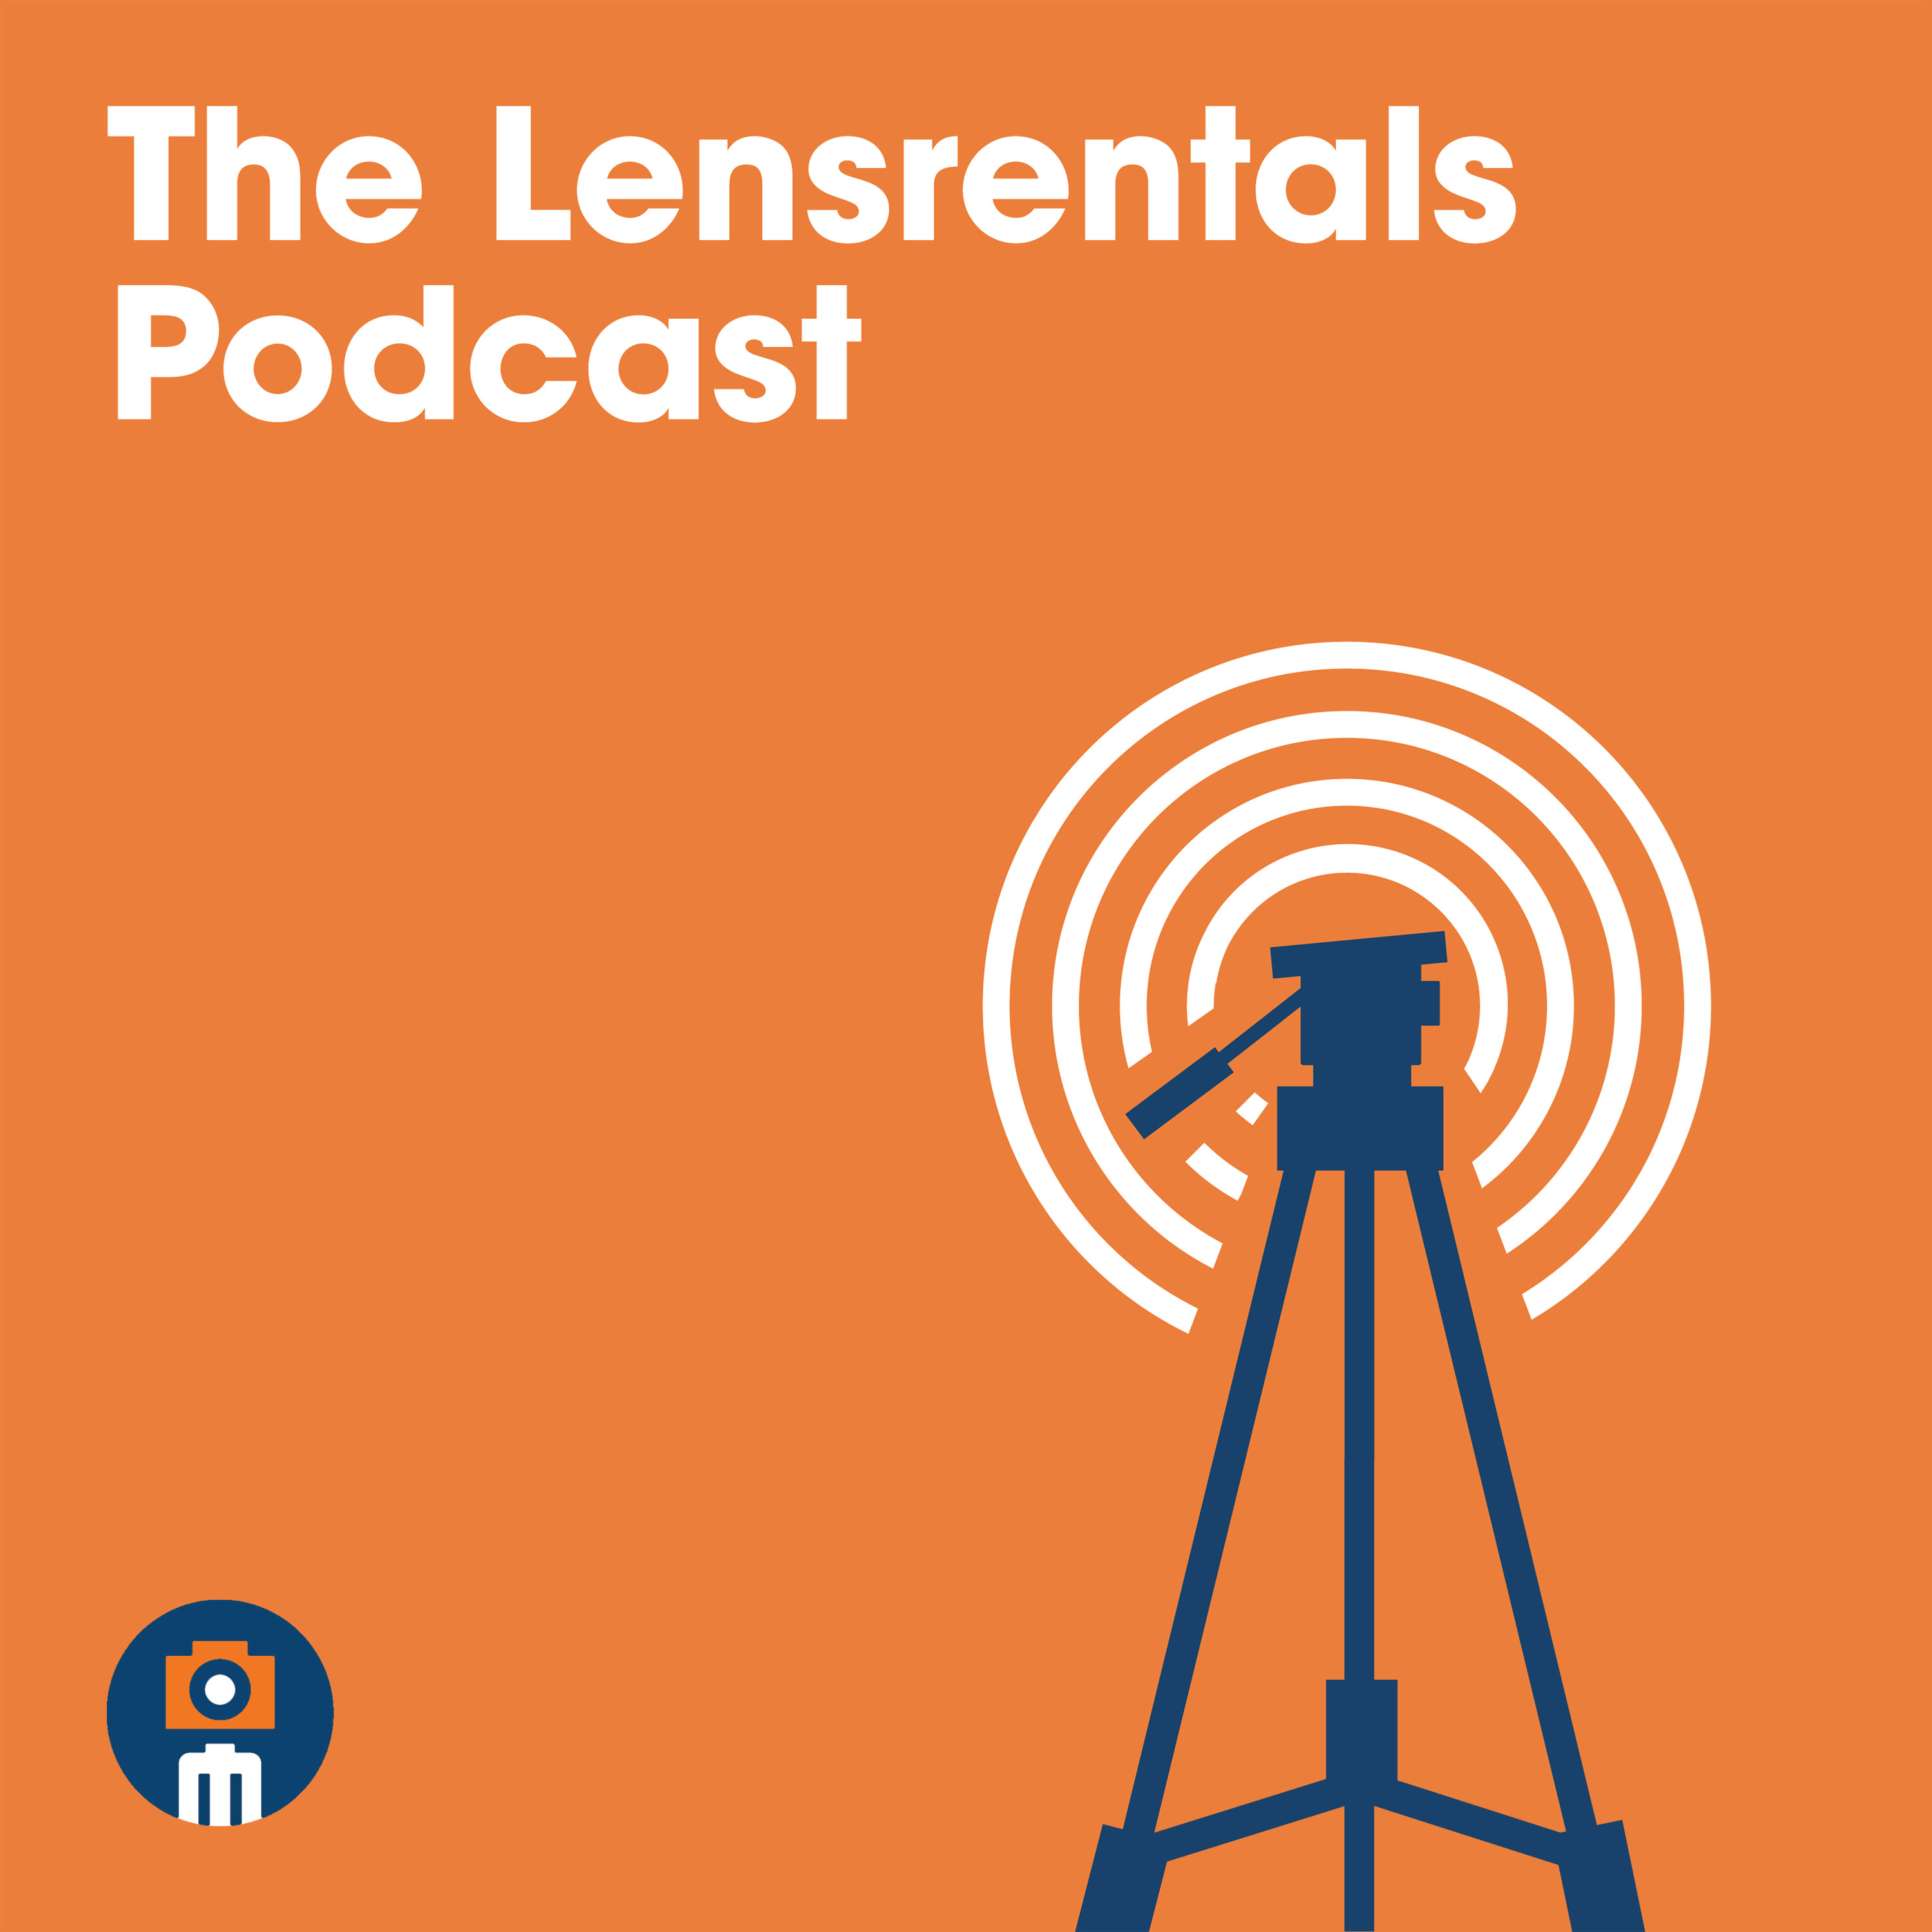 The Lensrentals Podcast show art